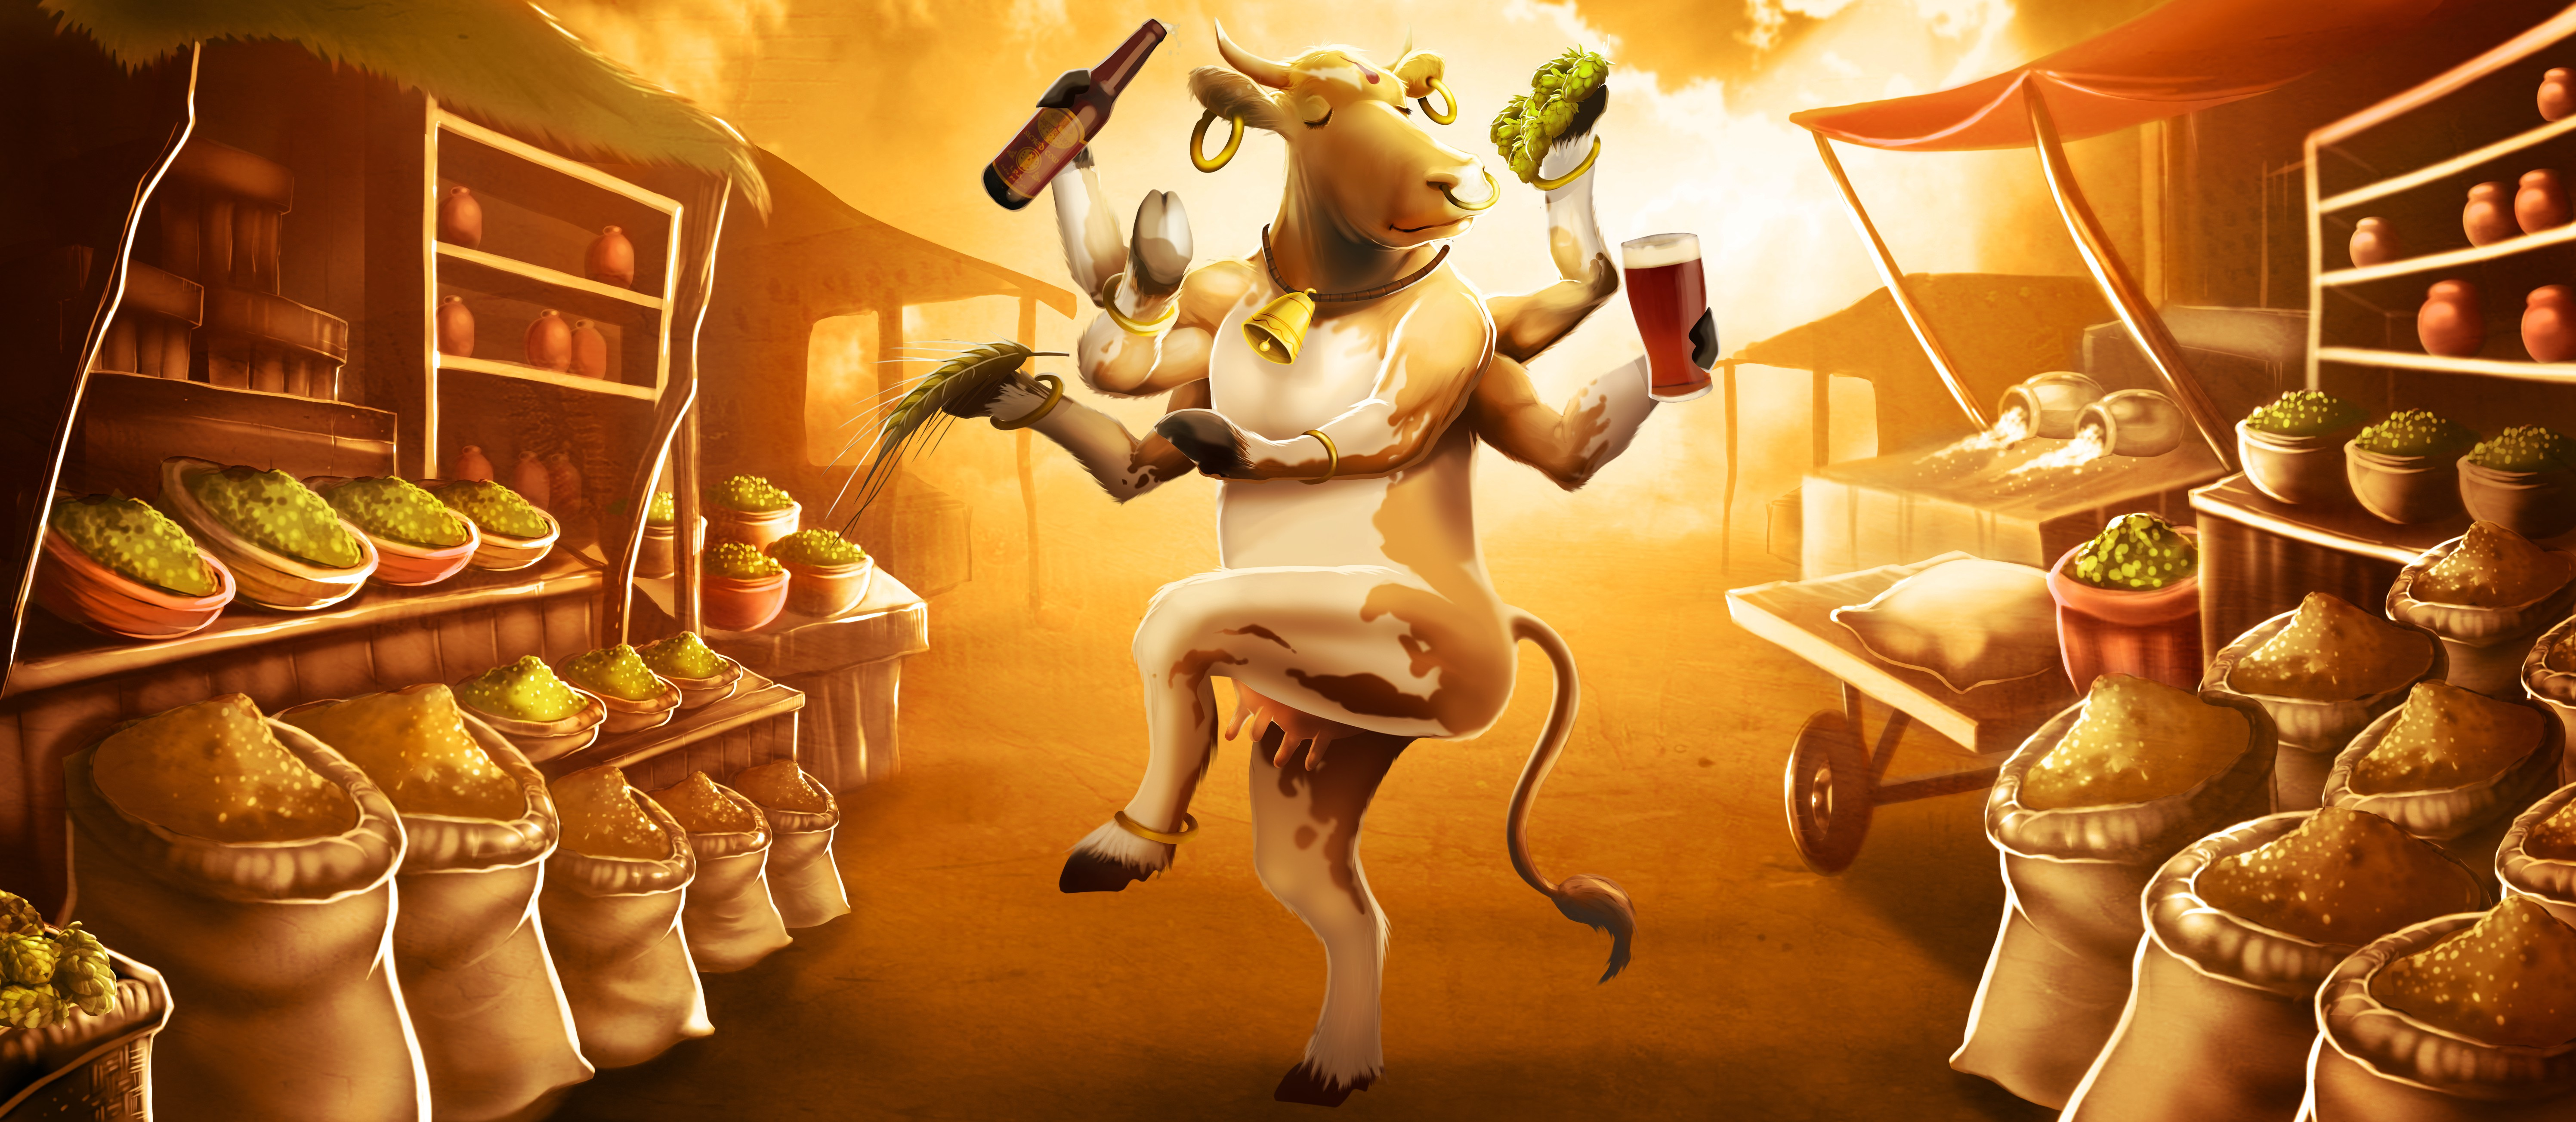 Create an eye-catching Sacred Cow illustration for Arbor Brewing Company